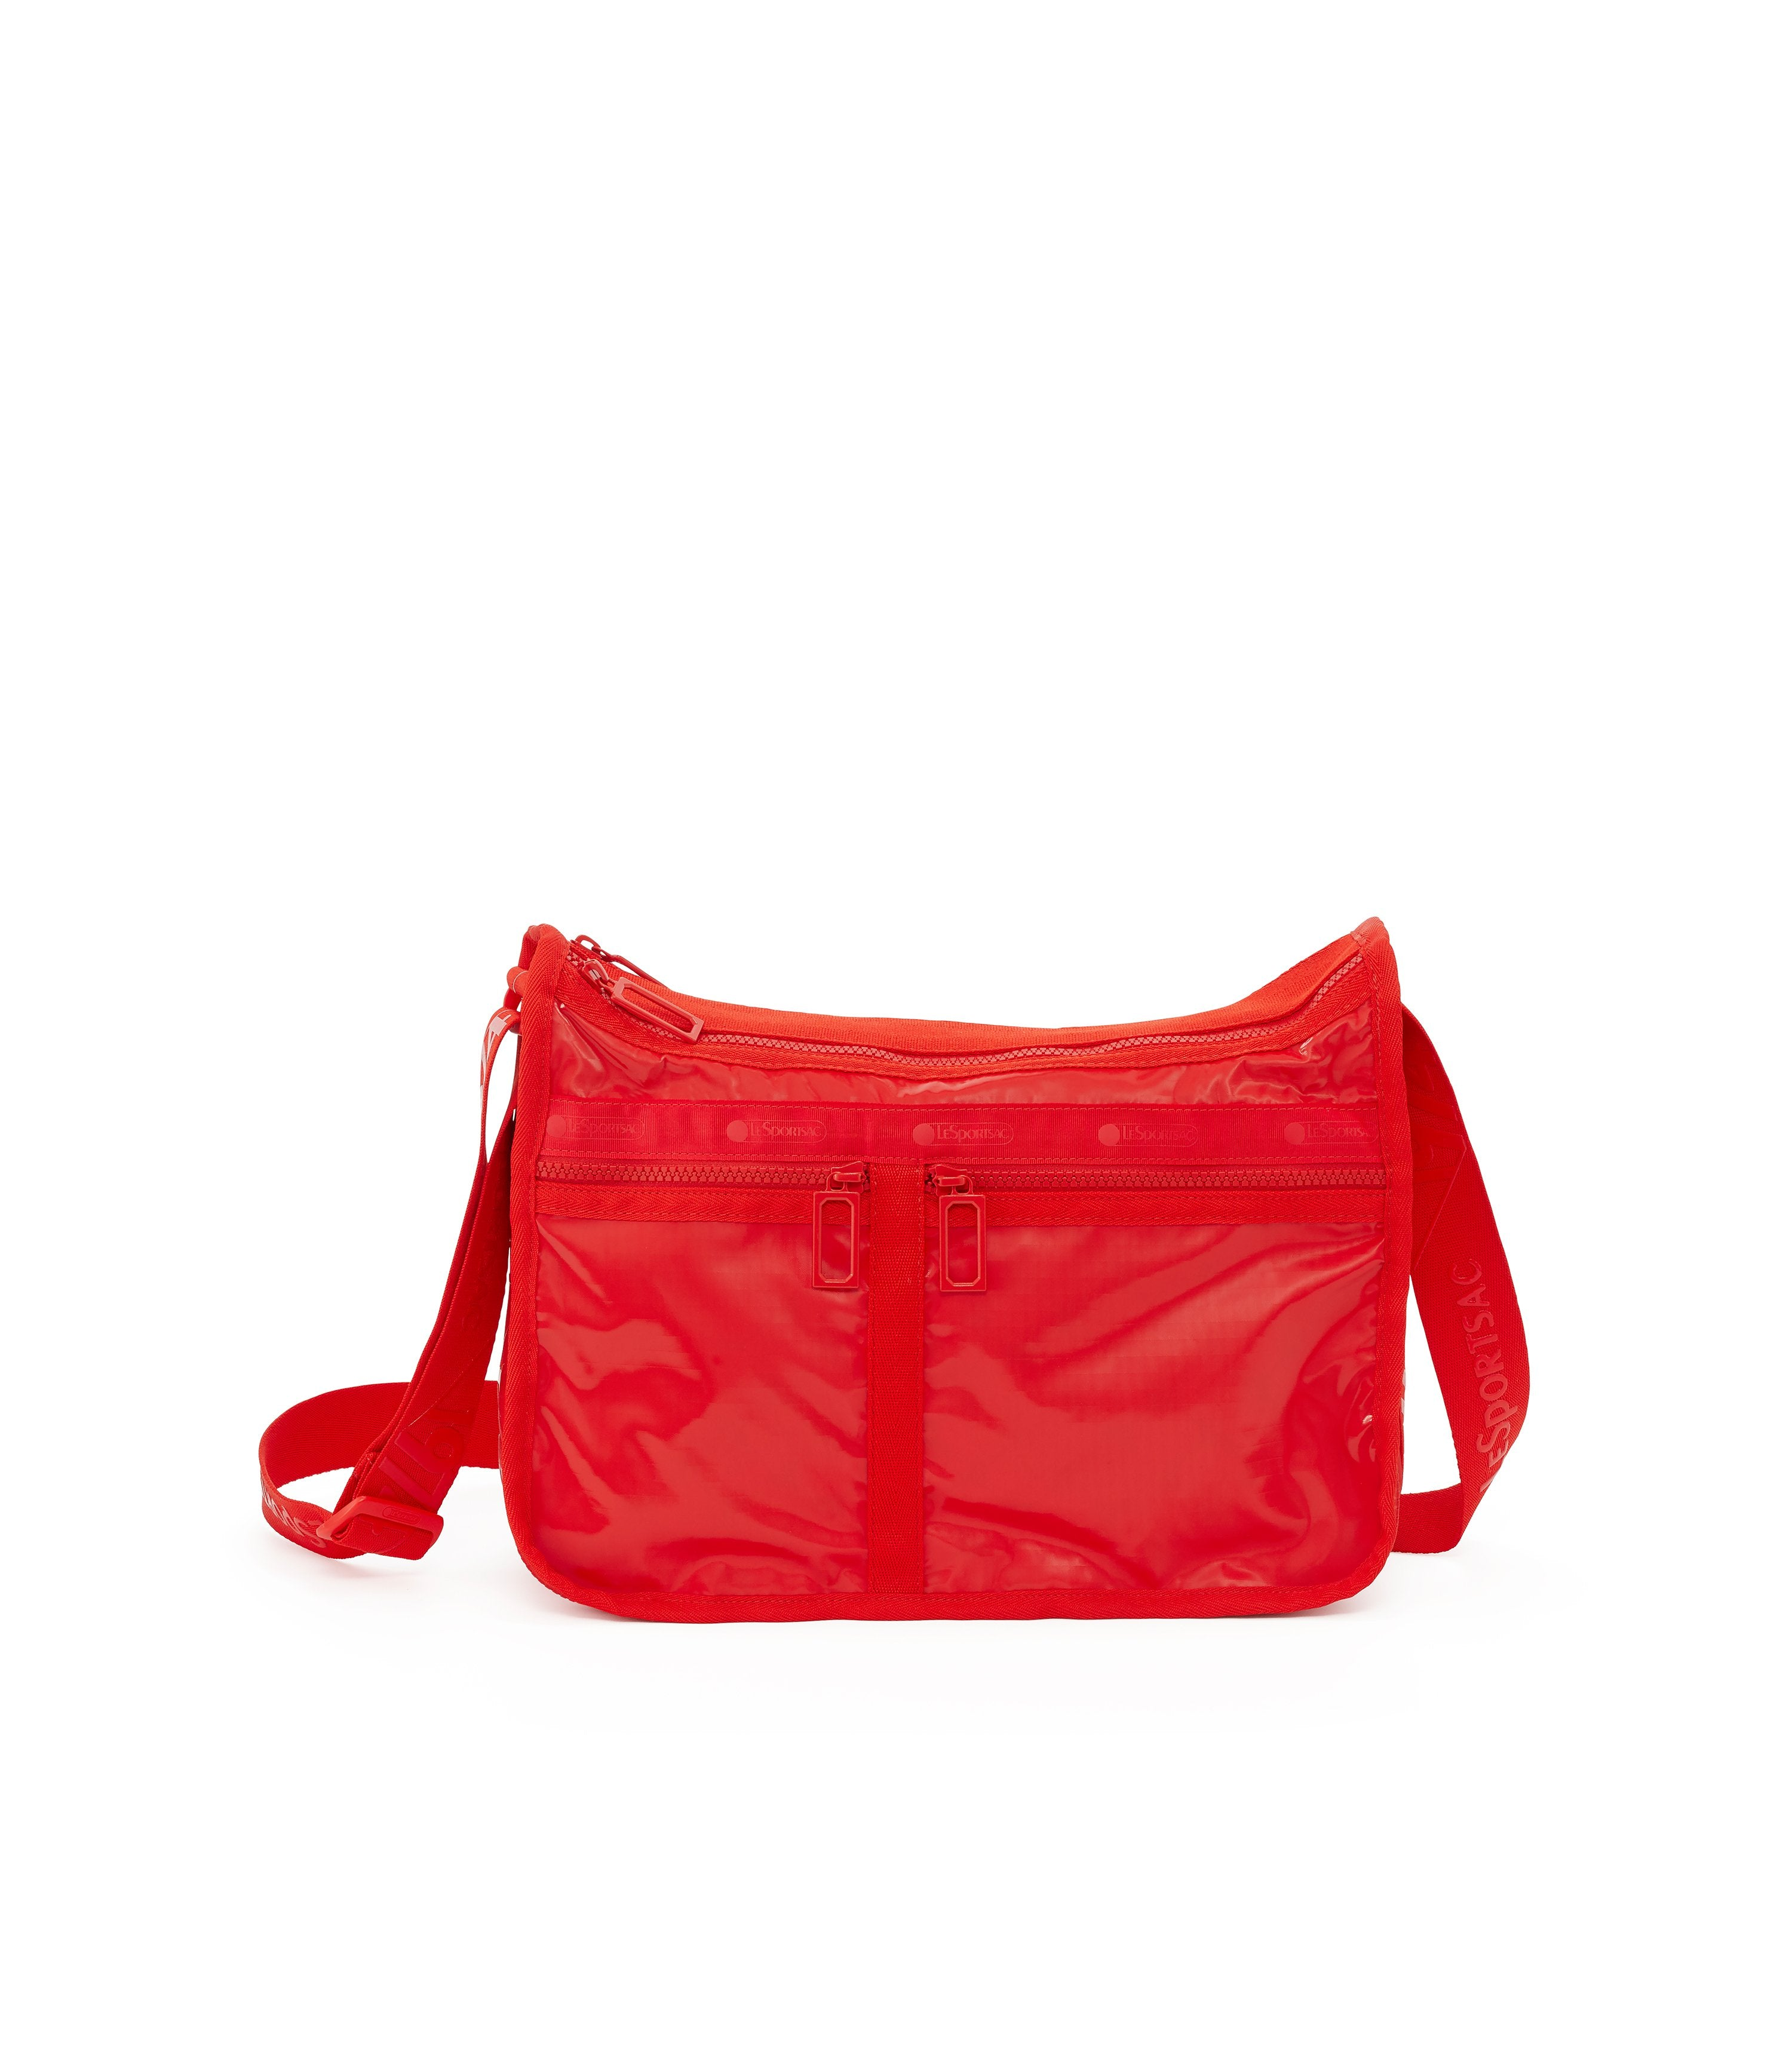 Deluxe Everyday Bag, Nylon Handbags and Classic Purses, Expandable, Crossbody, Red Patent